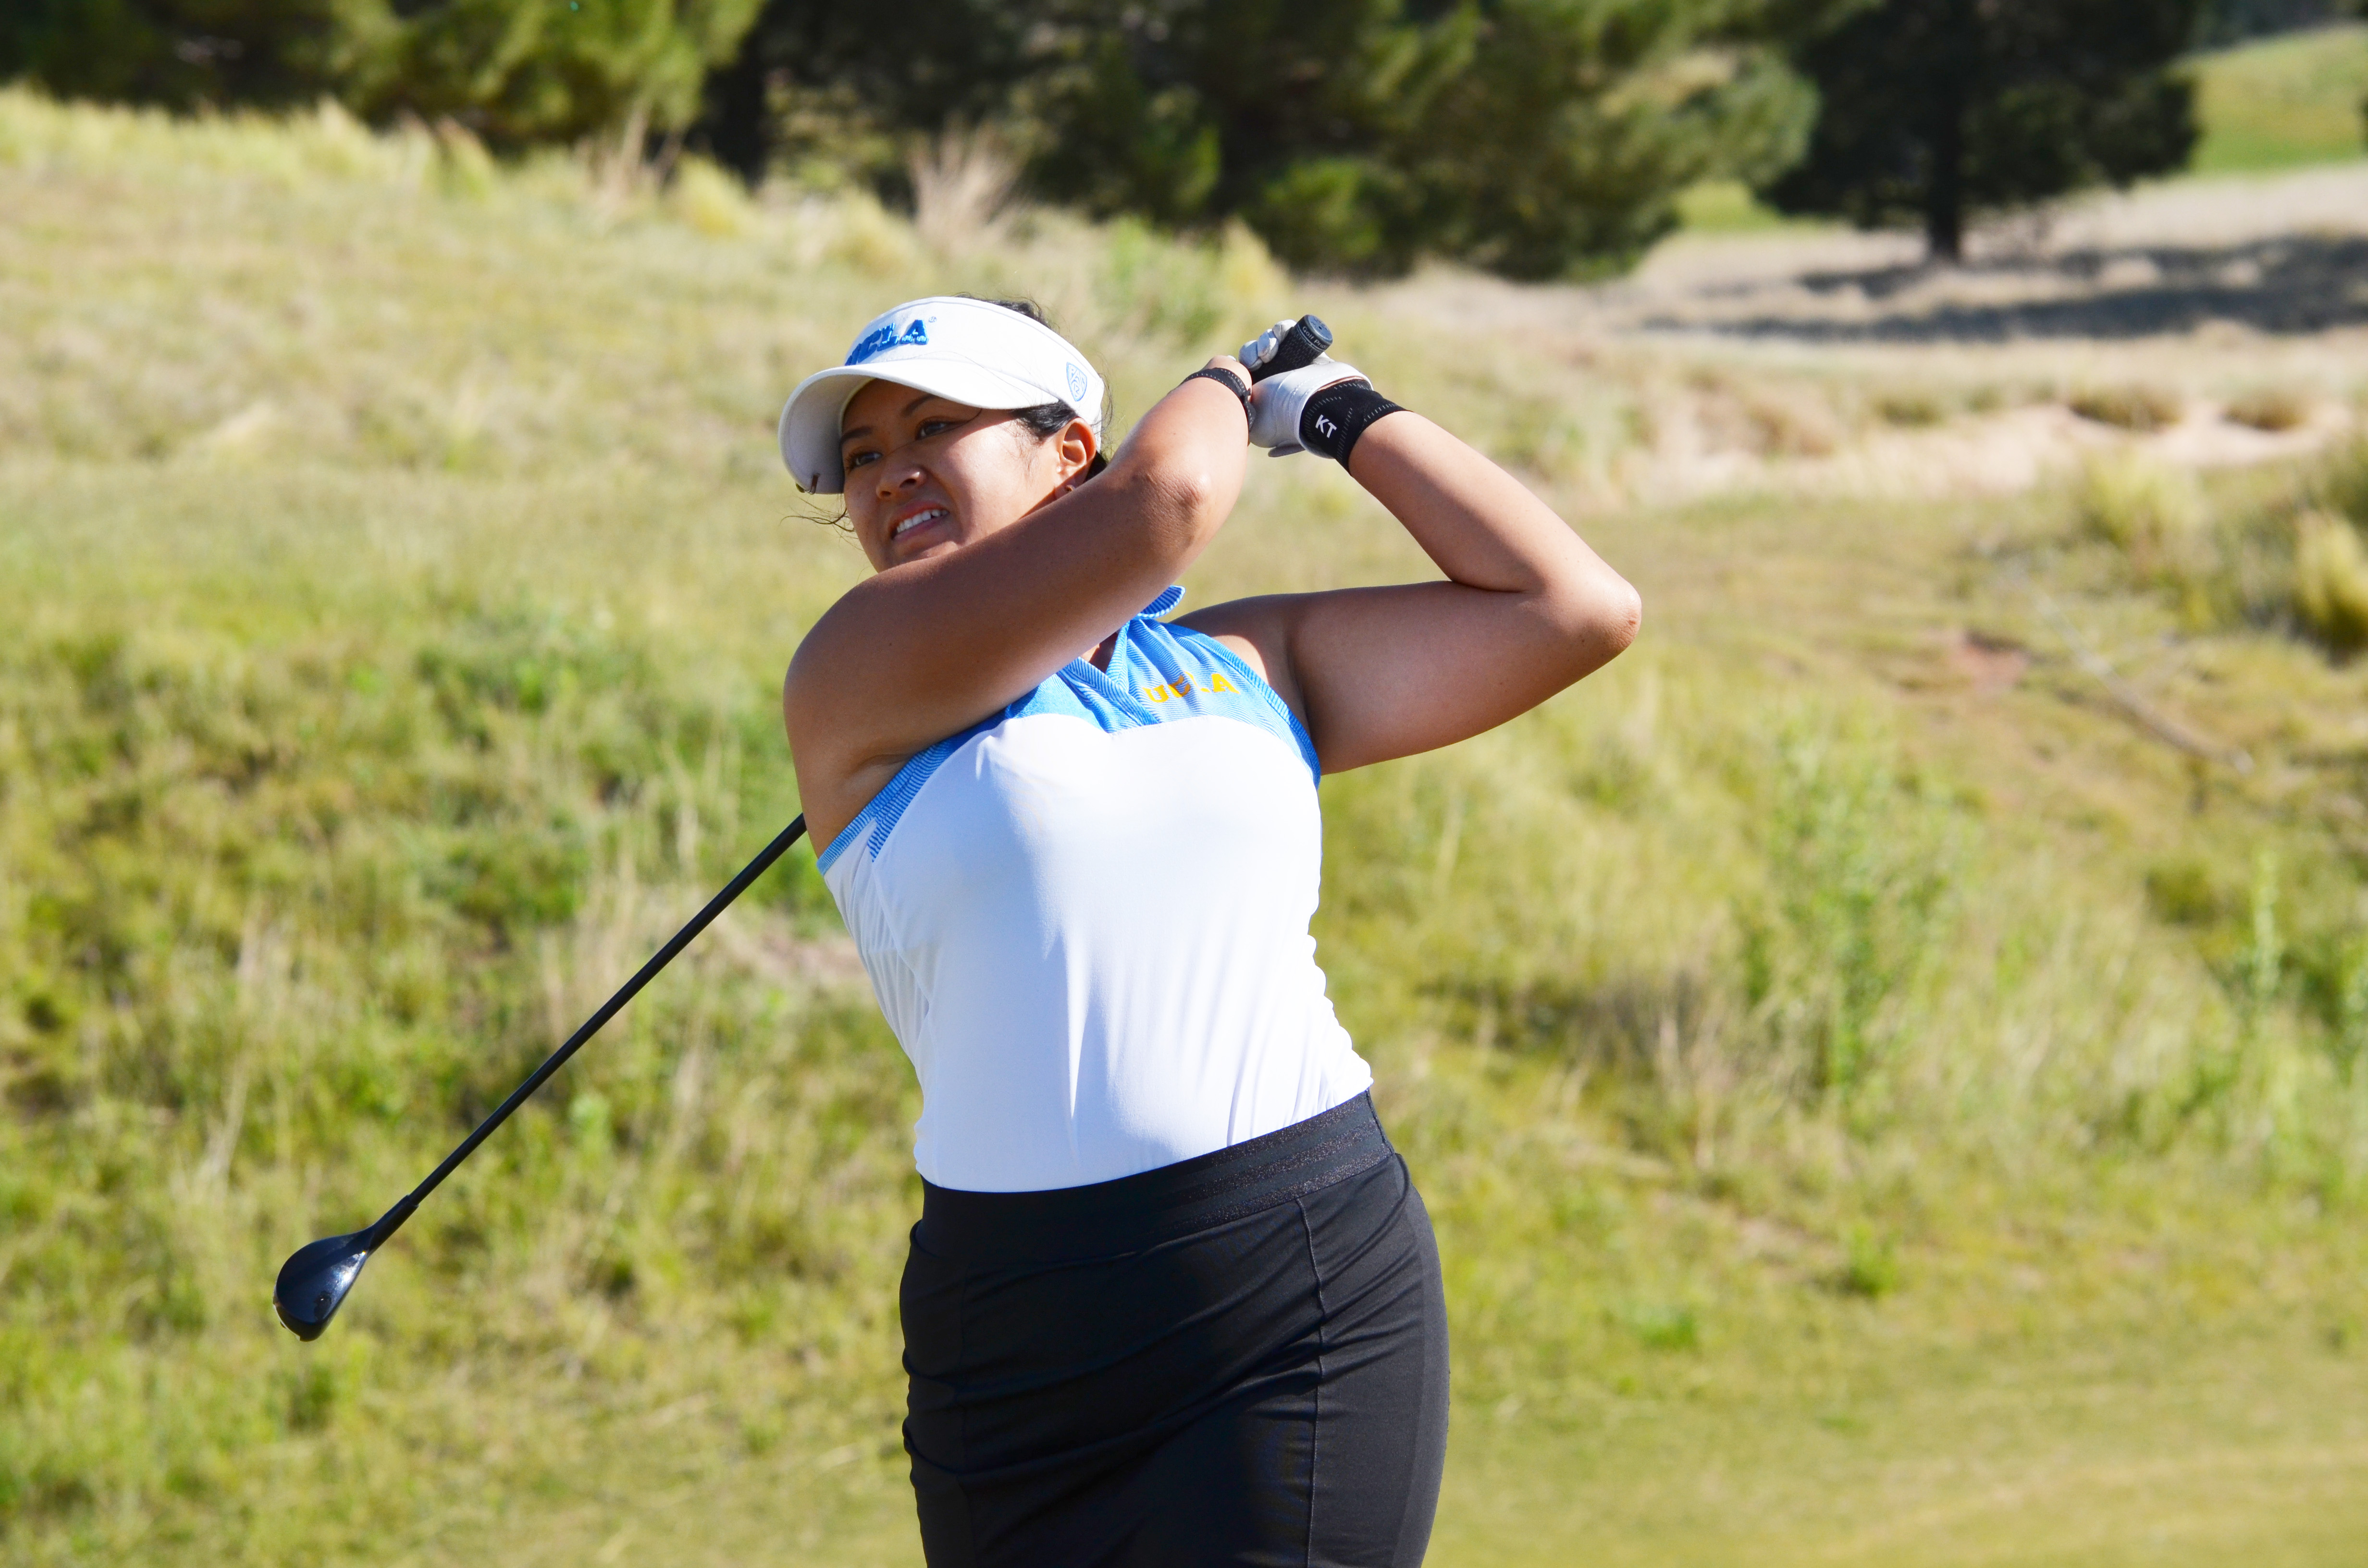 scga org this week in socal golf alison curdt pga claims the